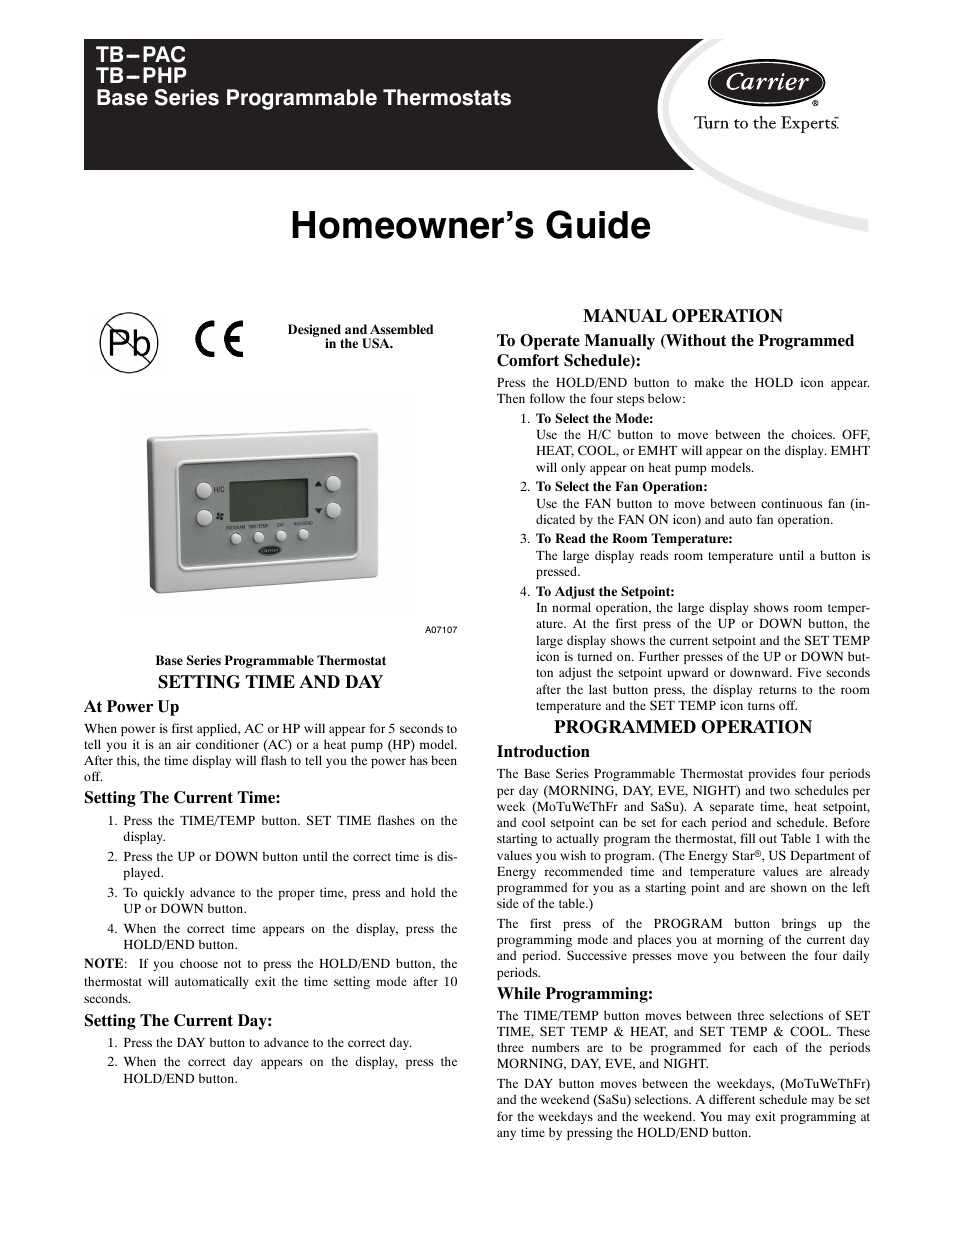 Homeowner S Guide Setting Time And Day Manual Operation Carrier Base Series Programmable Thermostats Tb Pac User Page 5 8